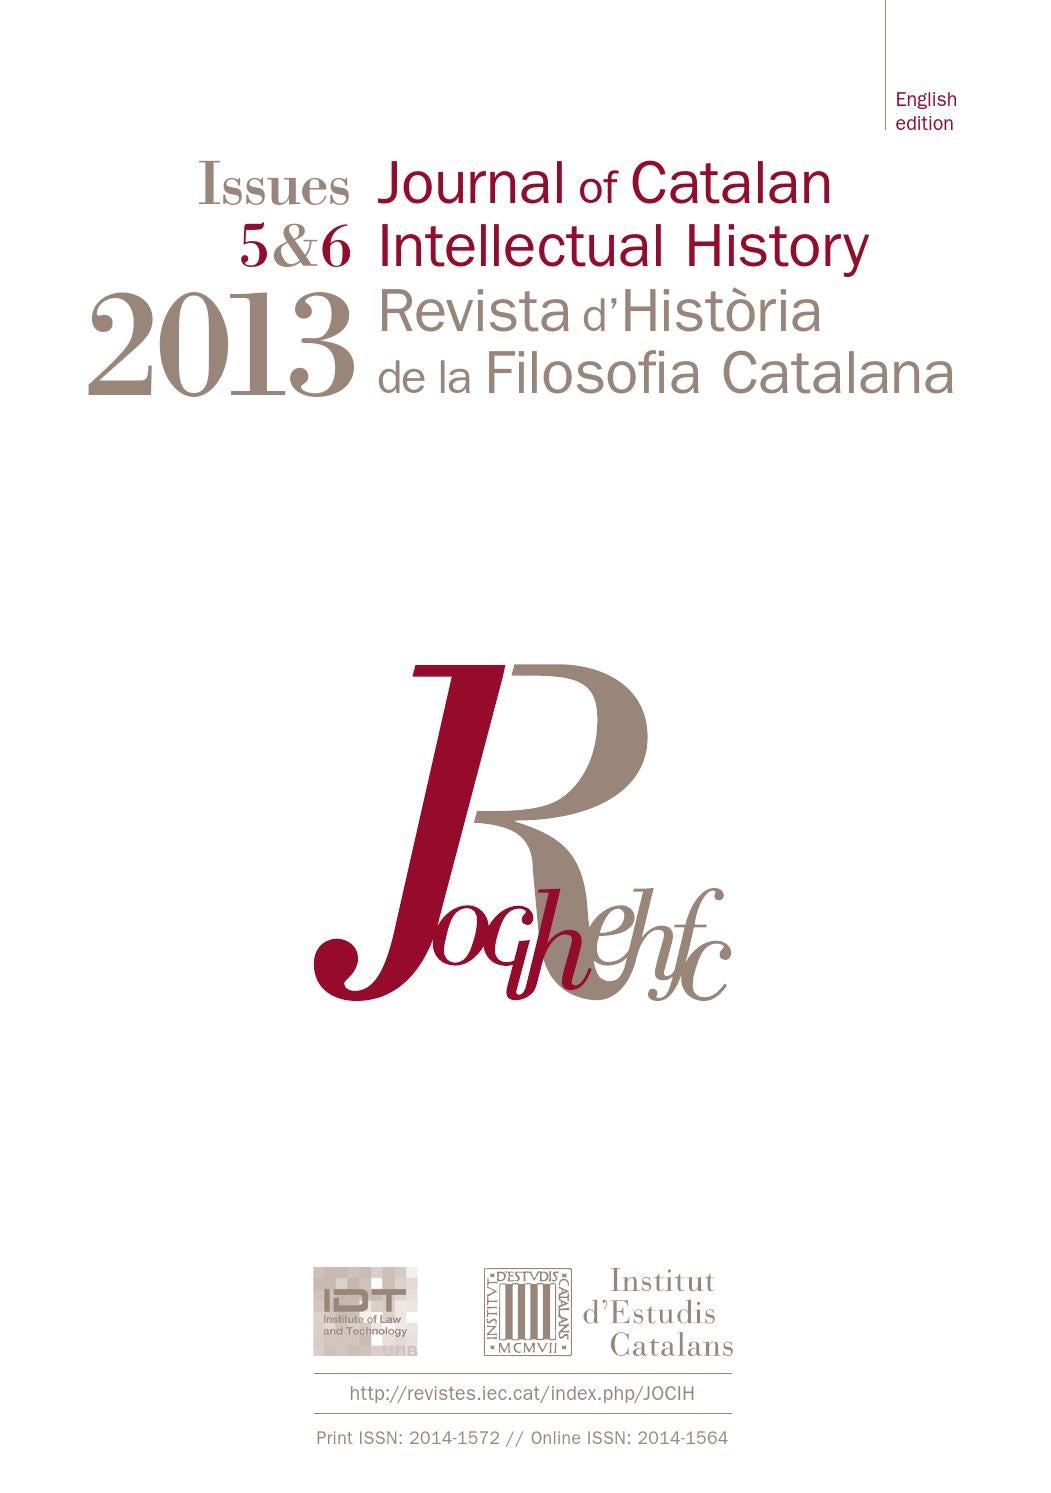 Journal of Catalan Intellectual History by Institut d'Estudis Catalans -  issuu